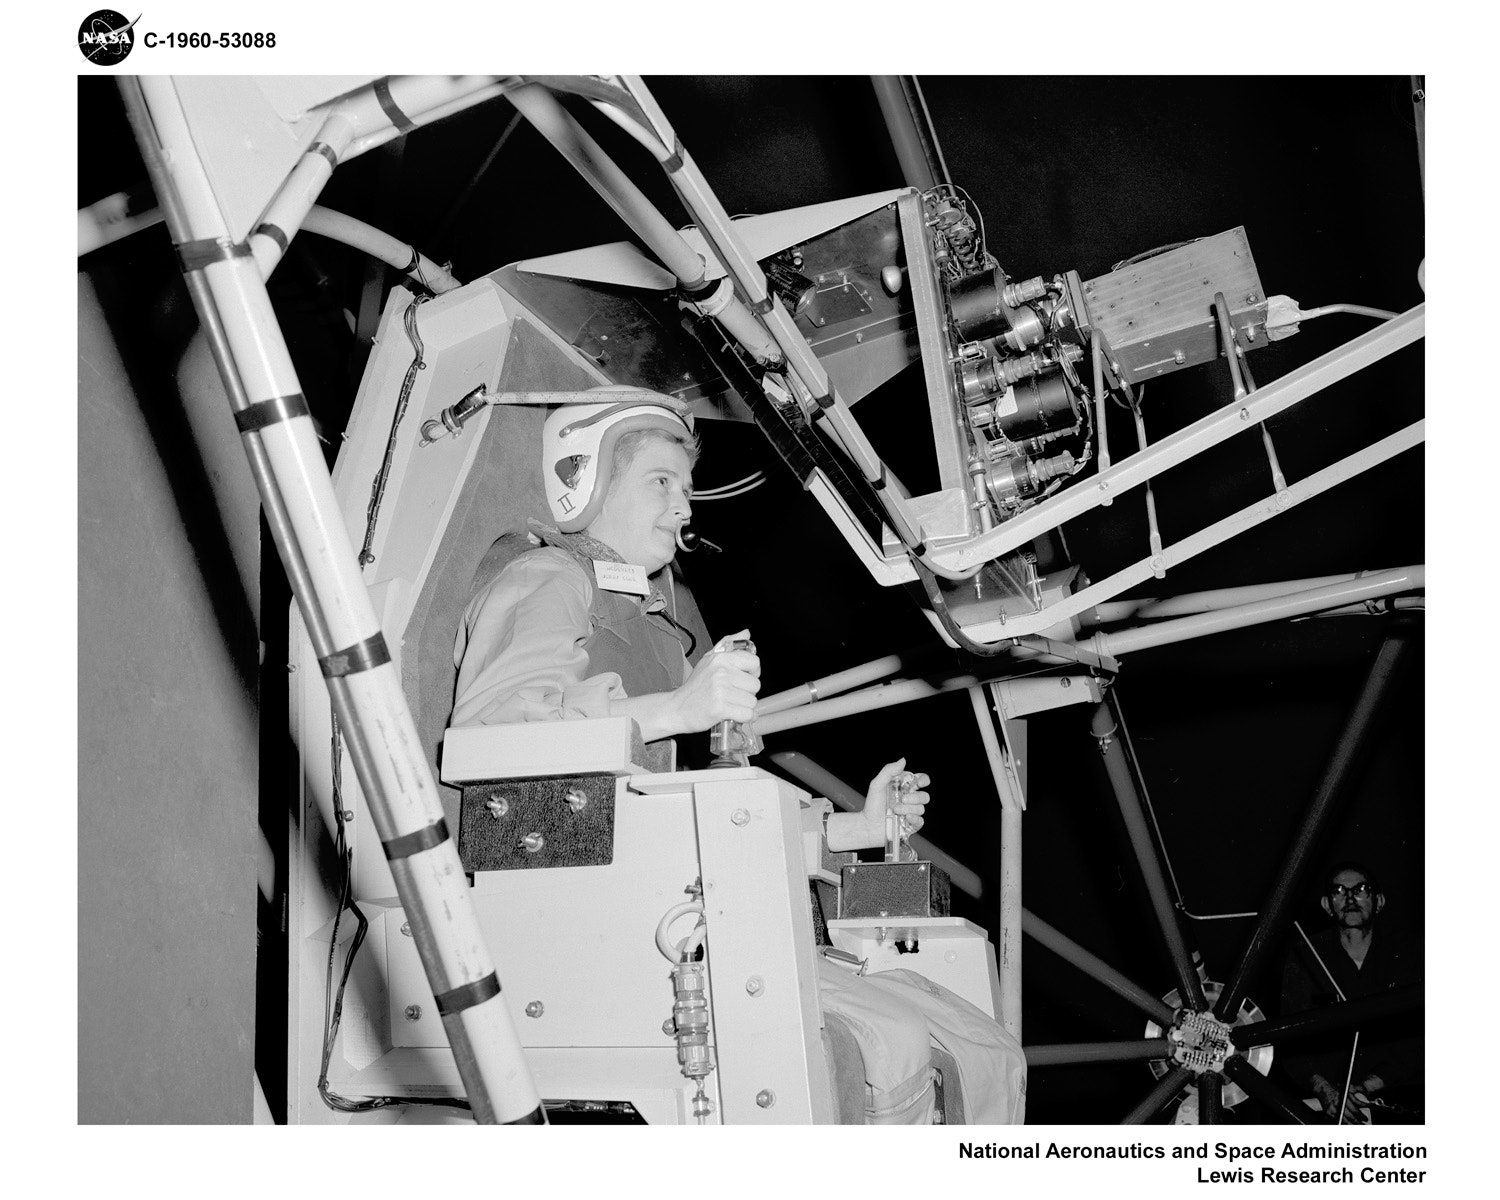 Jerrie Cobb, testing the Gimbal Rig in the Altitude Wind Tunnel in April 1960. The Gimbal Rig was used to train astronauts to control the spin of a tumbling spacecraft. Photo credit: NASA